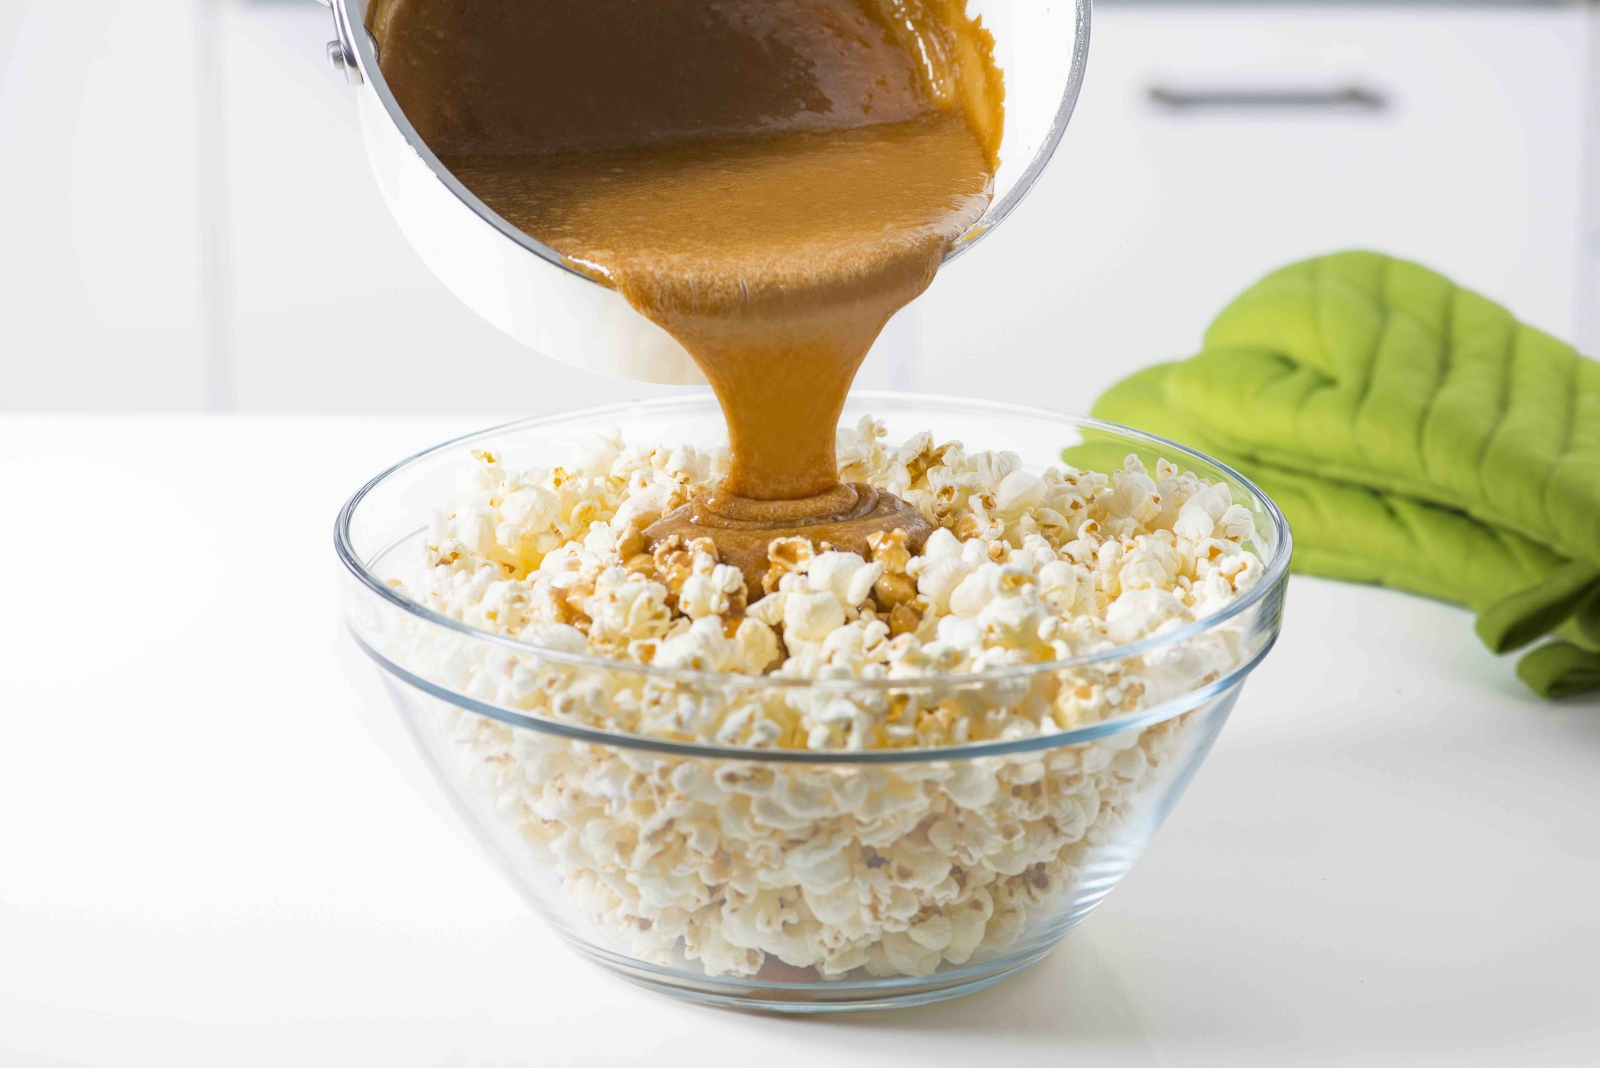 While it may sound intimidating, just pour the caramel into the popcorn bowl and start mixing it up. It will all distribute evenly, we promise! Photo courtesy of the Popcorn Board.